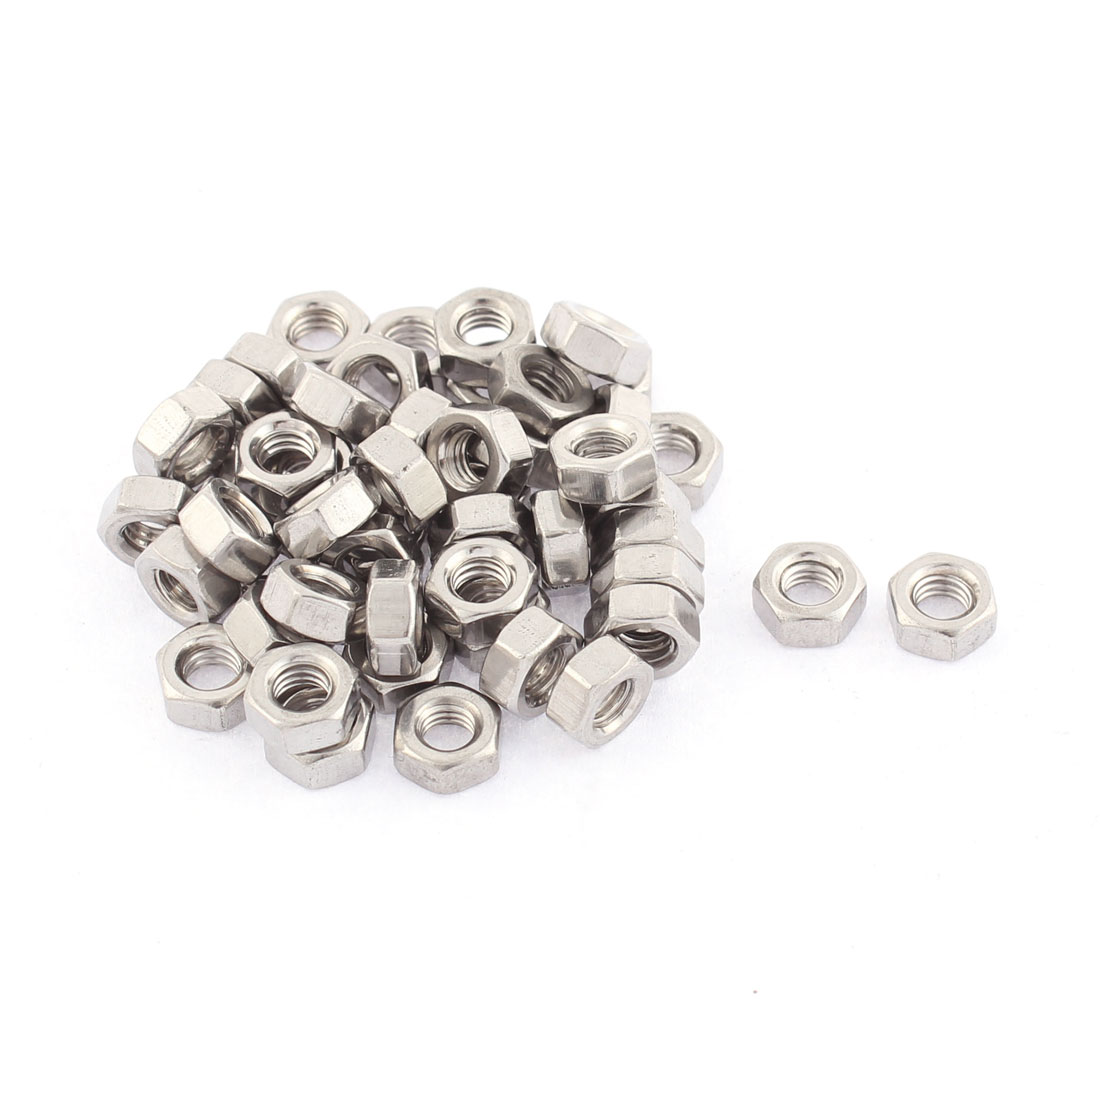 M4 Thread Dia 304 Stainless Steel Electric Machine Fastener Screws Hex Nut 50pcs